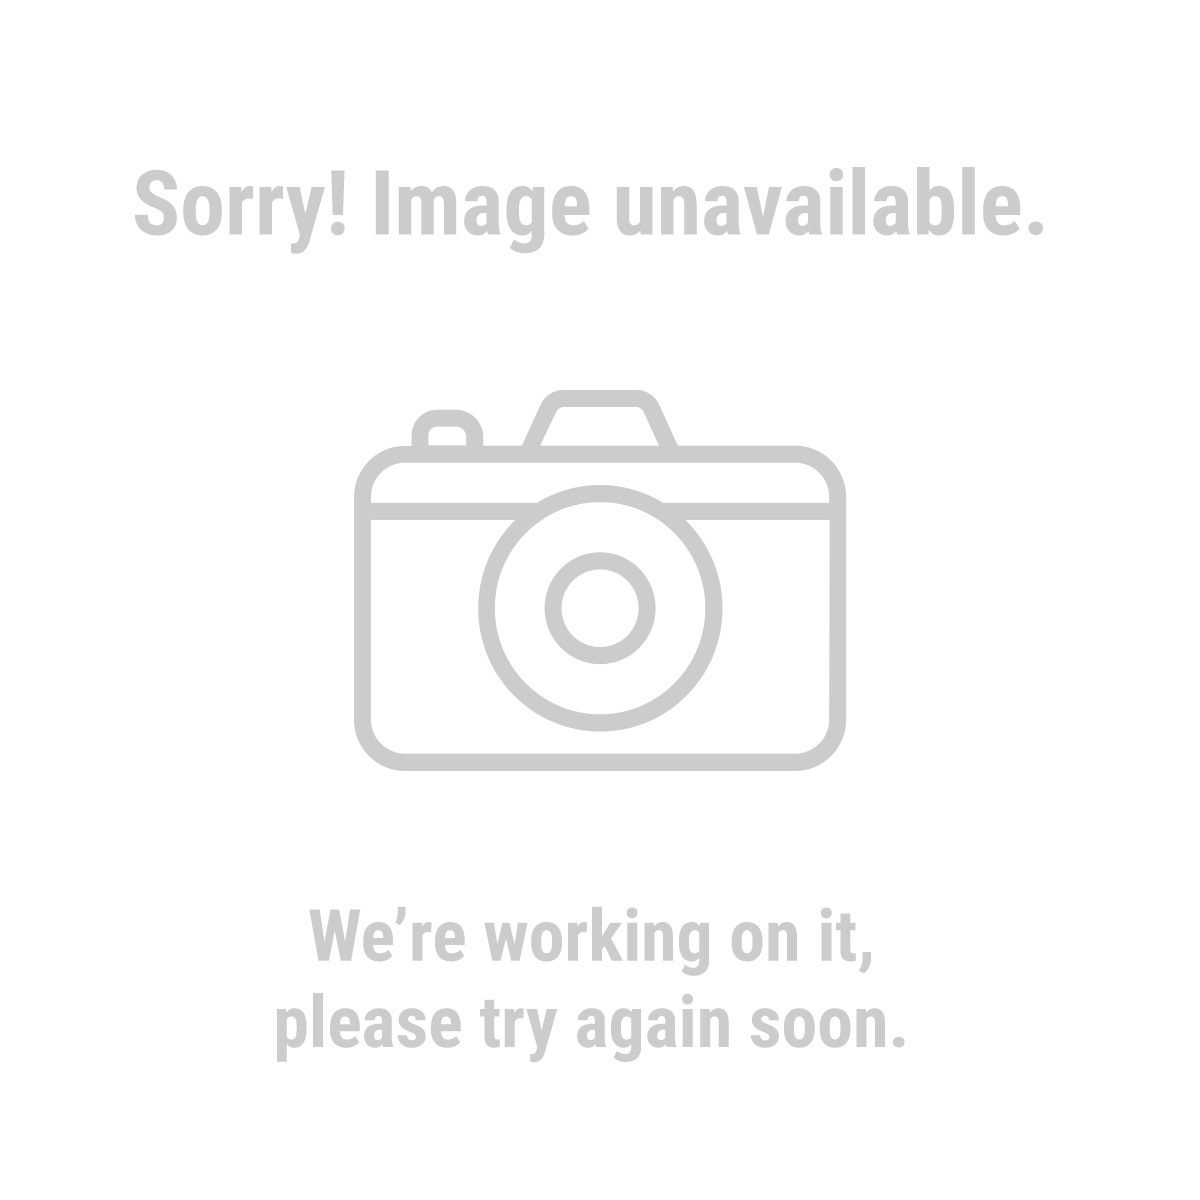 Best HD Floor Jack For SUV/Trucks?